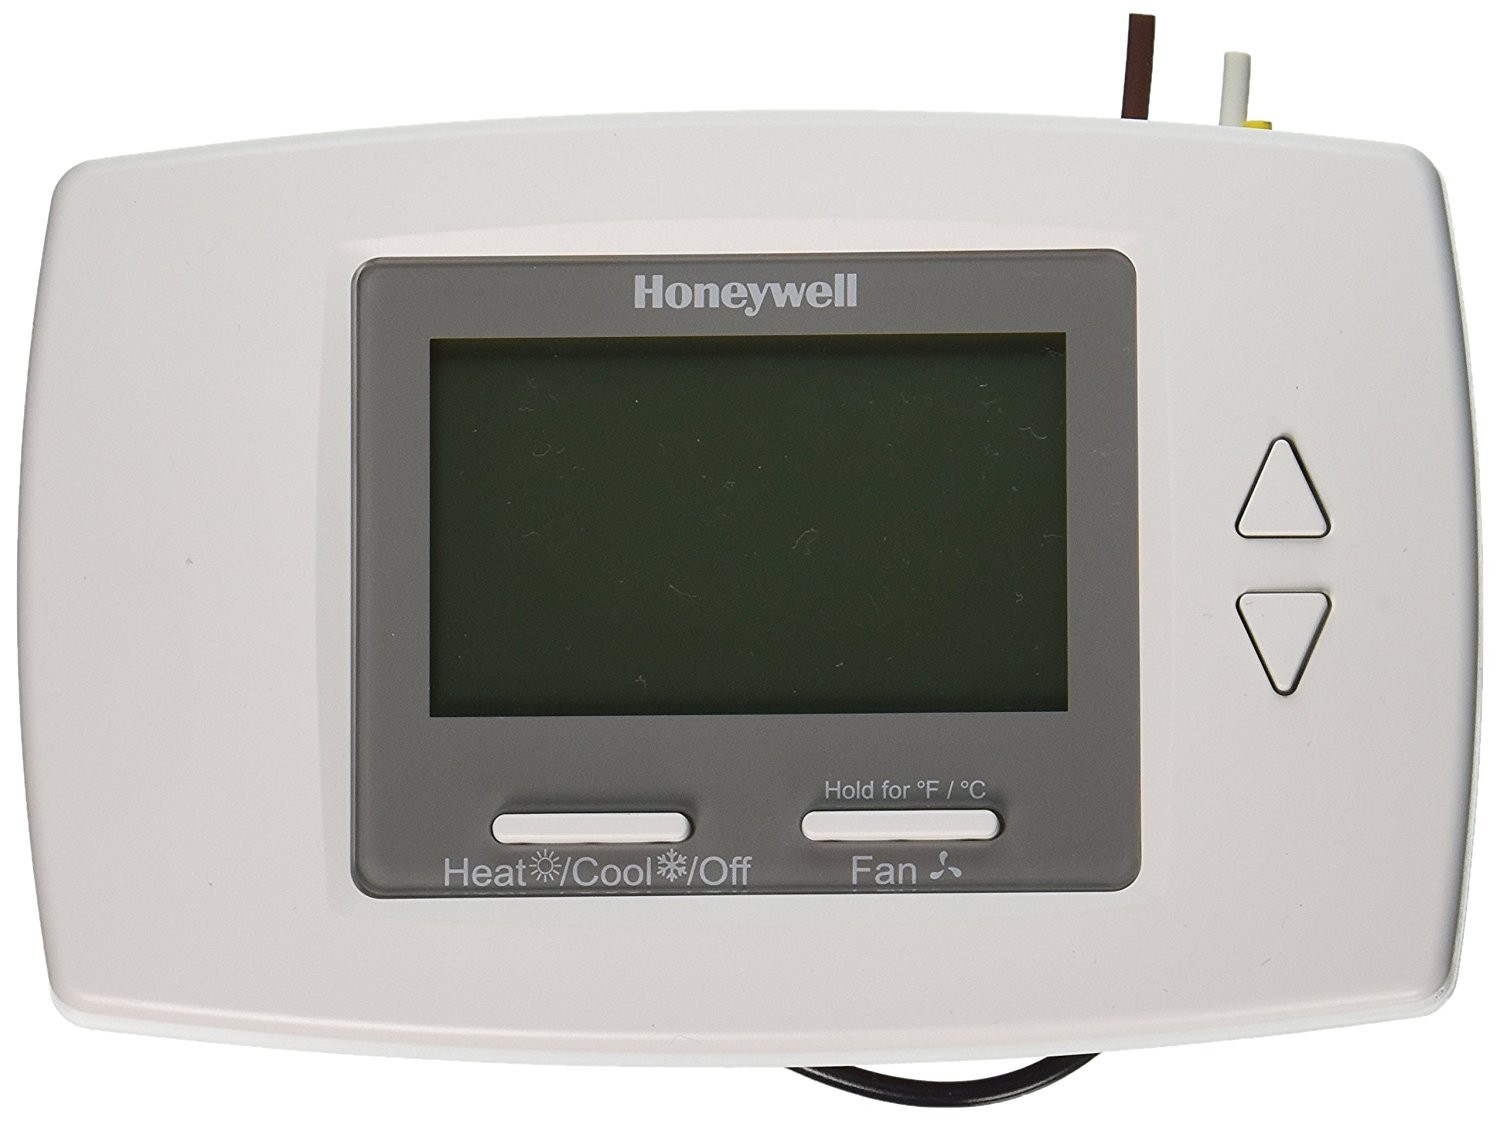 Honeywell TB6575A1000 SuitePro Fan Coil Thermostat Programmable Household Thermostats Amazon